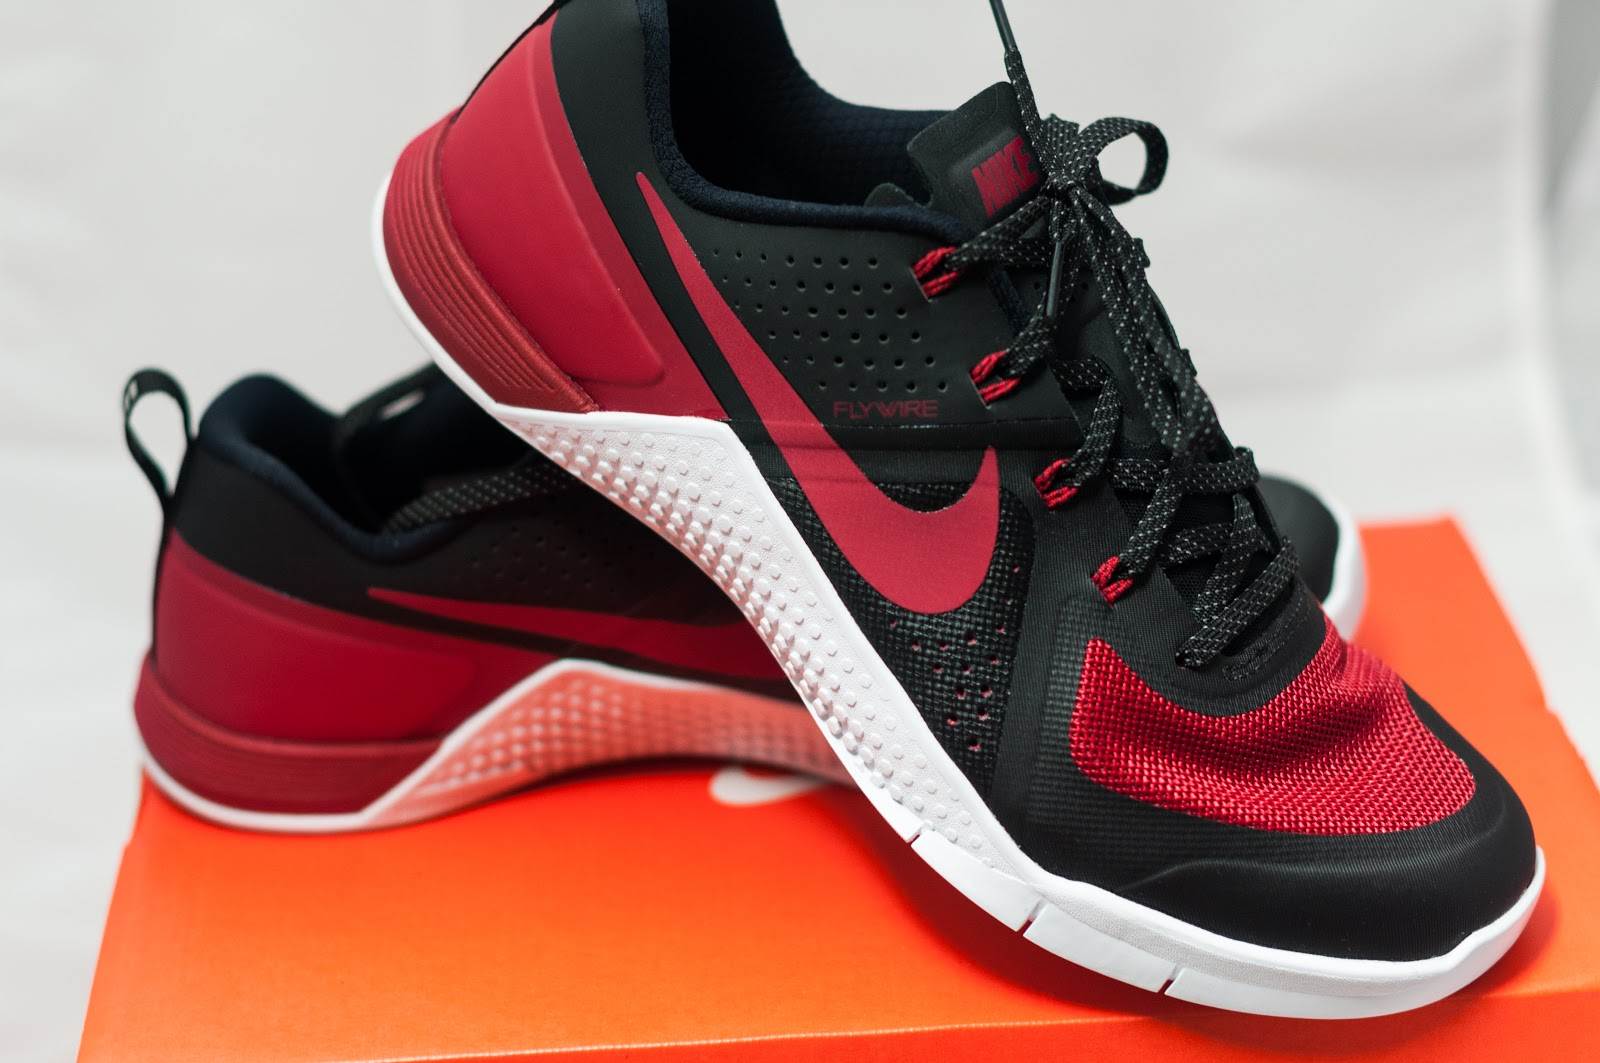 review nike metcon 1 varsity red banned nerdfit guam. Black Bedroom Furniture Sets. Home Design Ideas